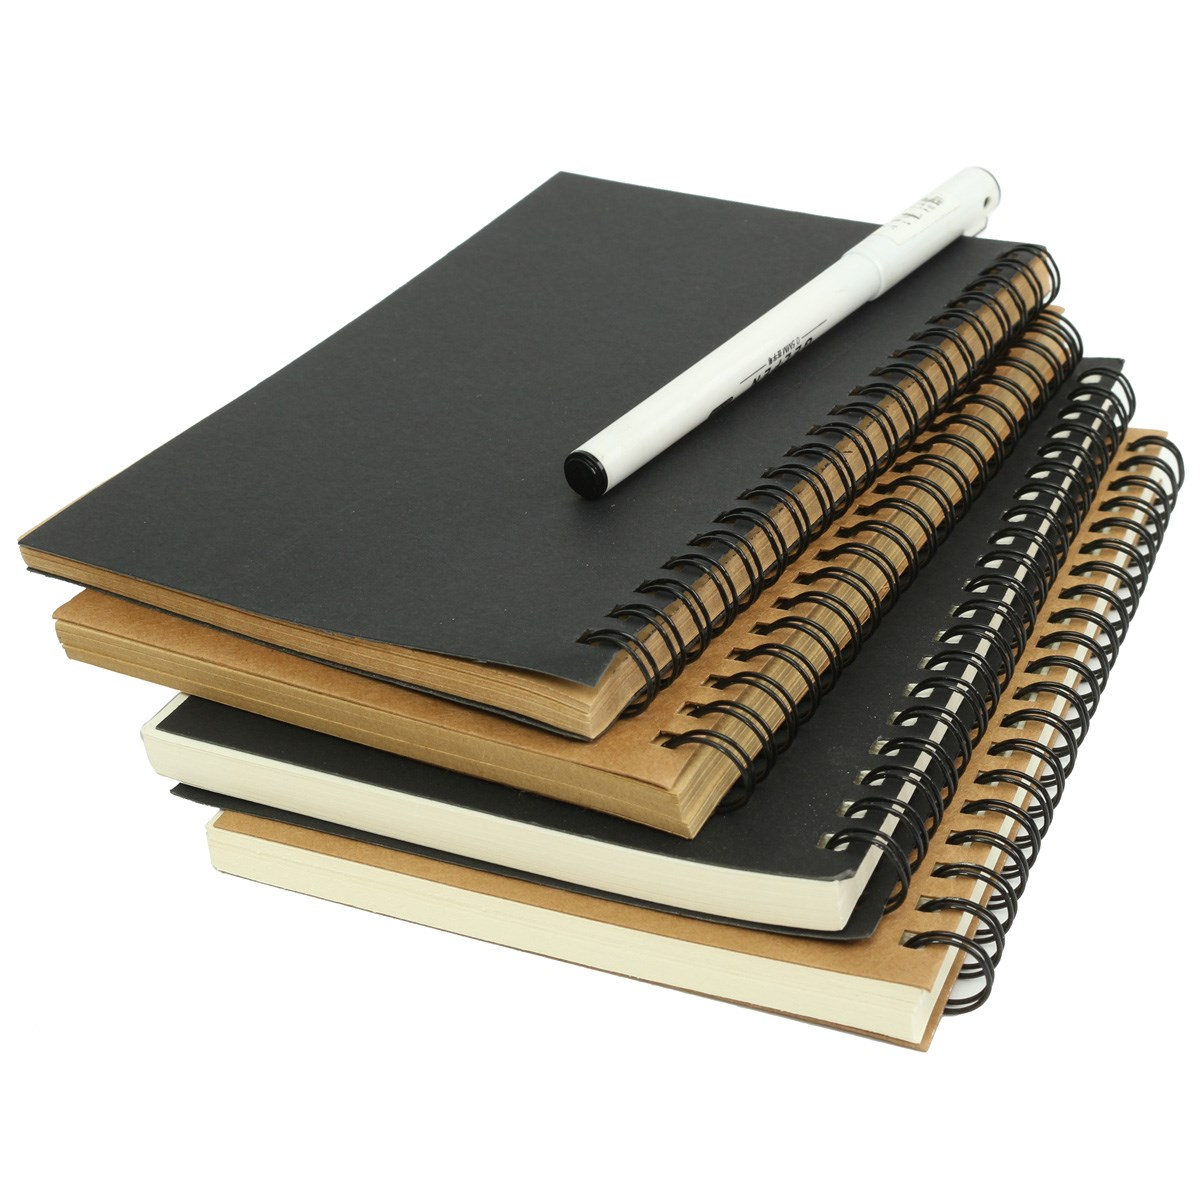 Best Price Best Promotion Retro Kraft Coil Sketch Sketchbooks Blank Notebook Creat Notebook School Stationery(China (Mainland))